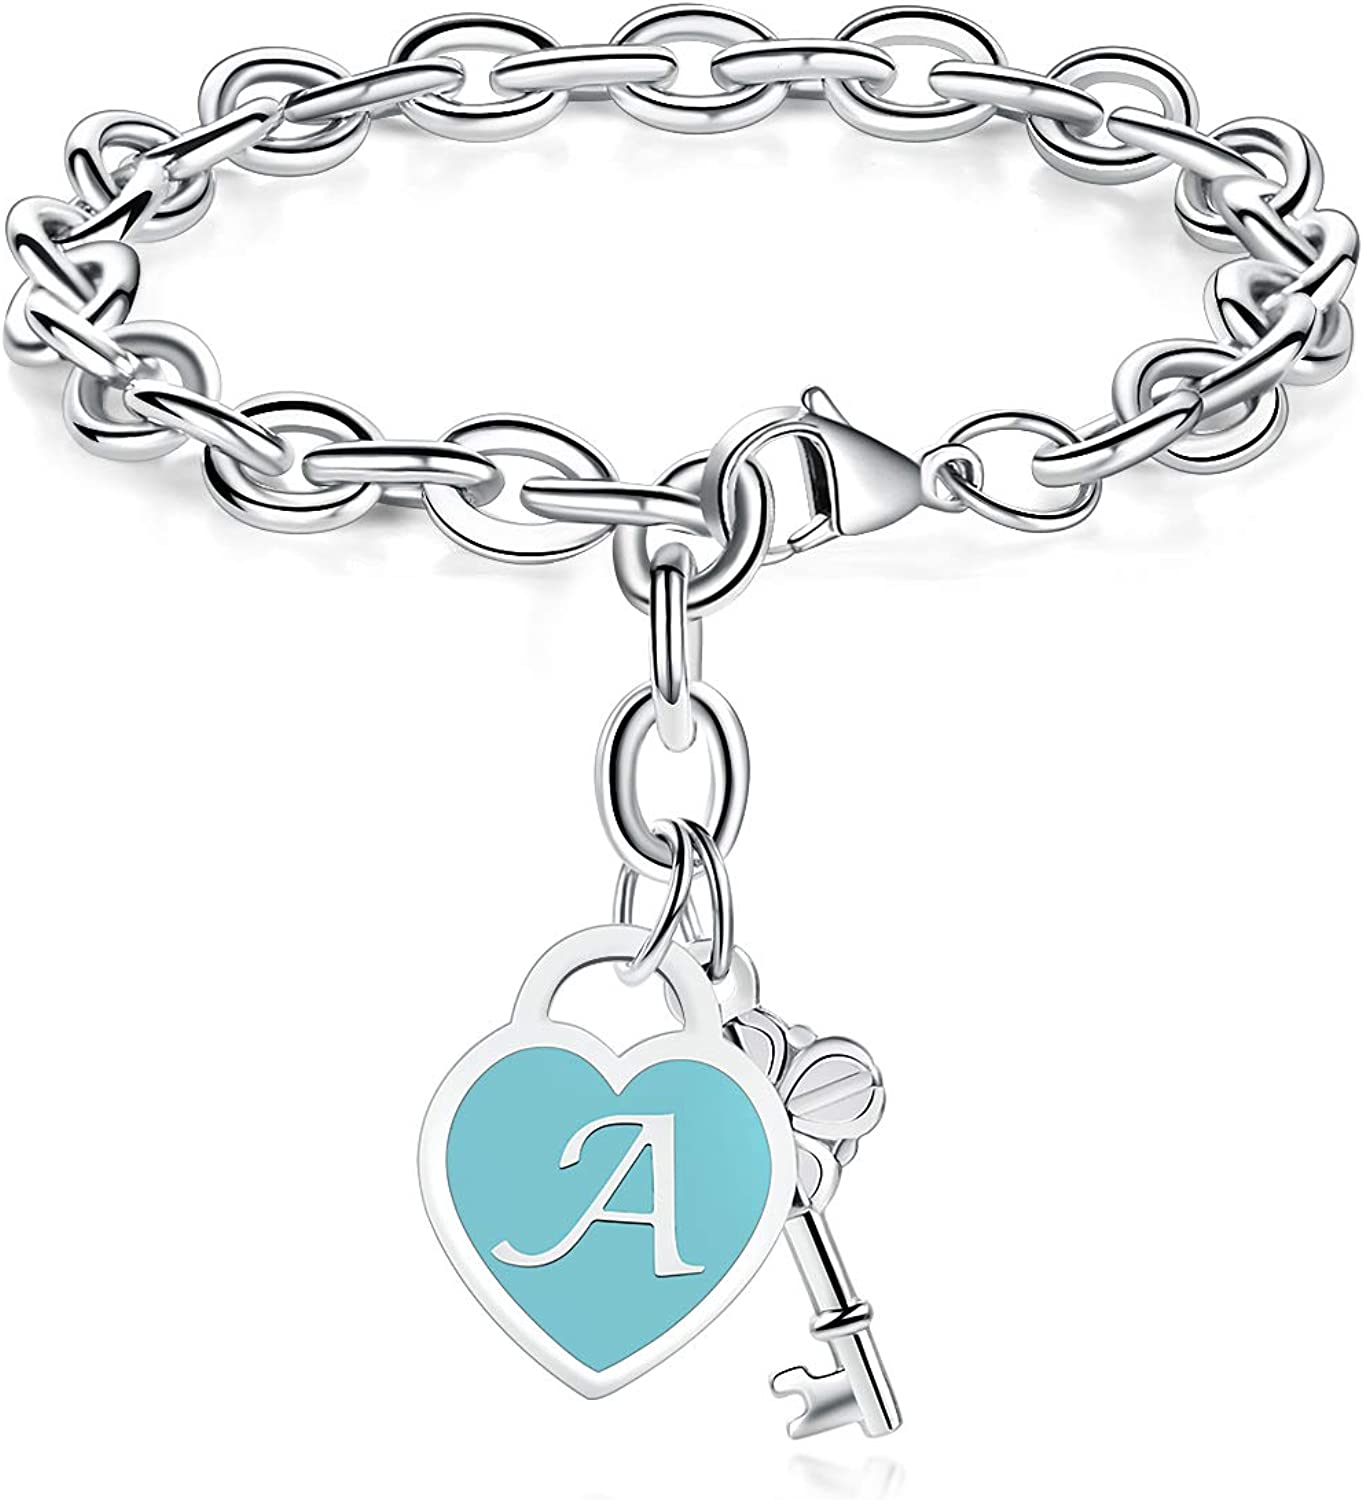 TONY & SANDY Initial Bracelets Heart Engraved 26 Letters Charms Bracelet Stainless Steel Silver Alphabet Bracelet with Cute Key Birthday Christmas Jewelry Gift for Women Teen Girls